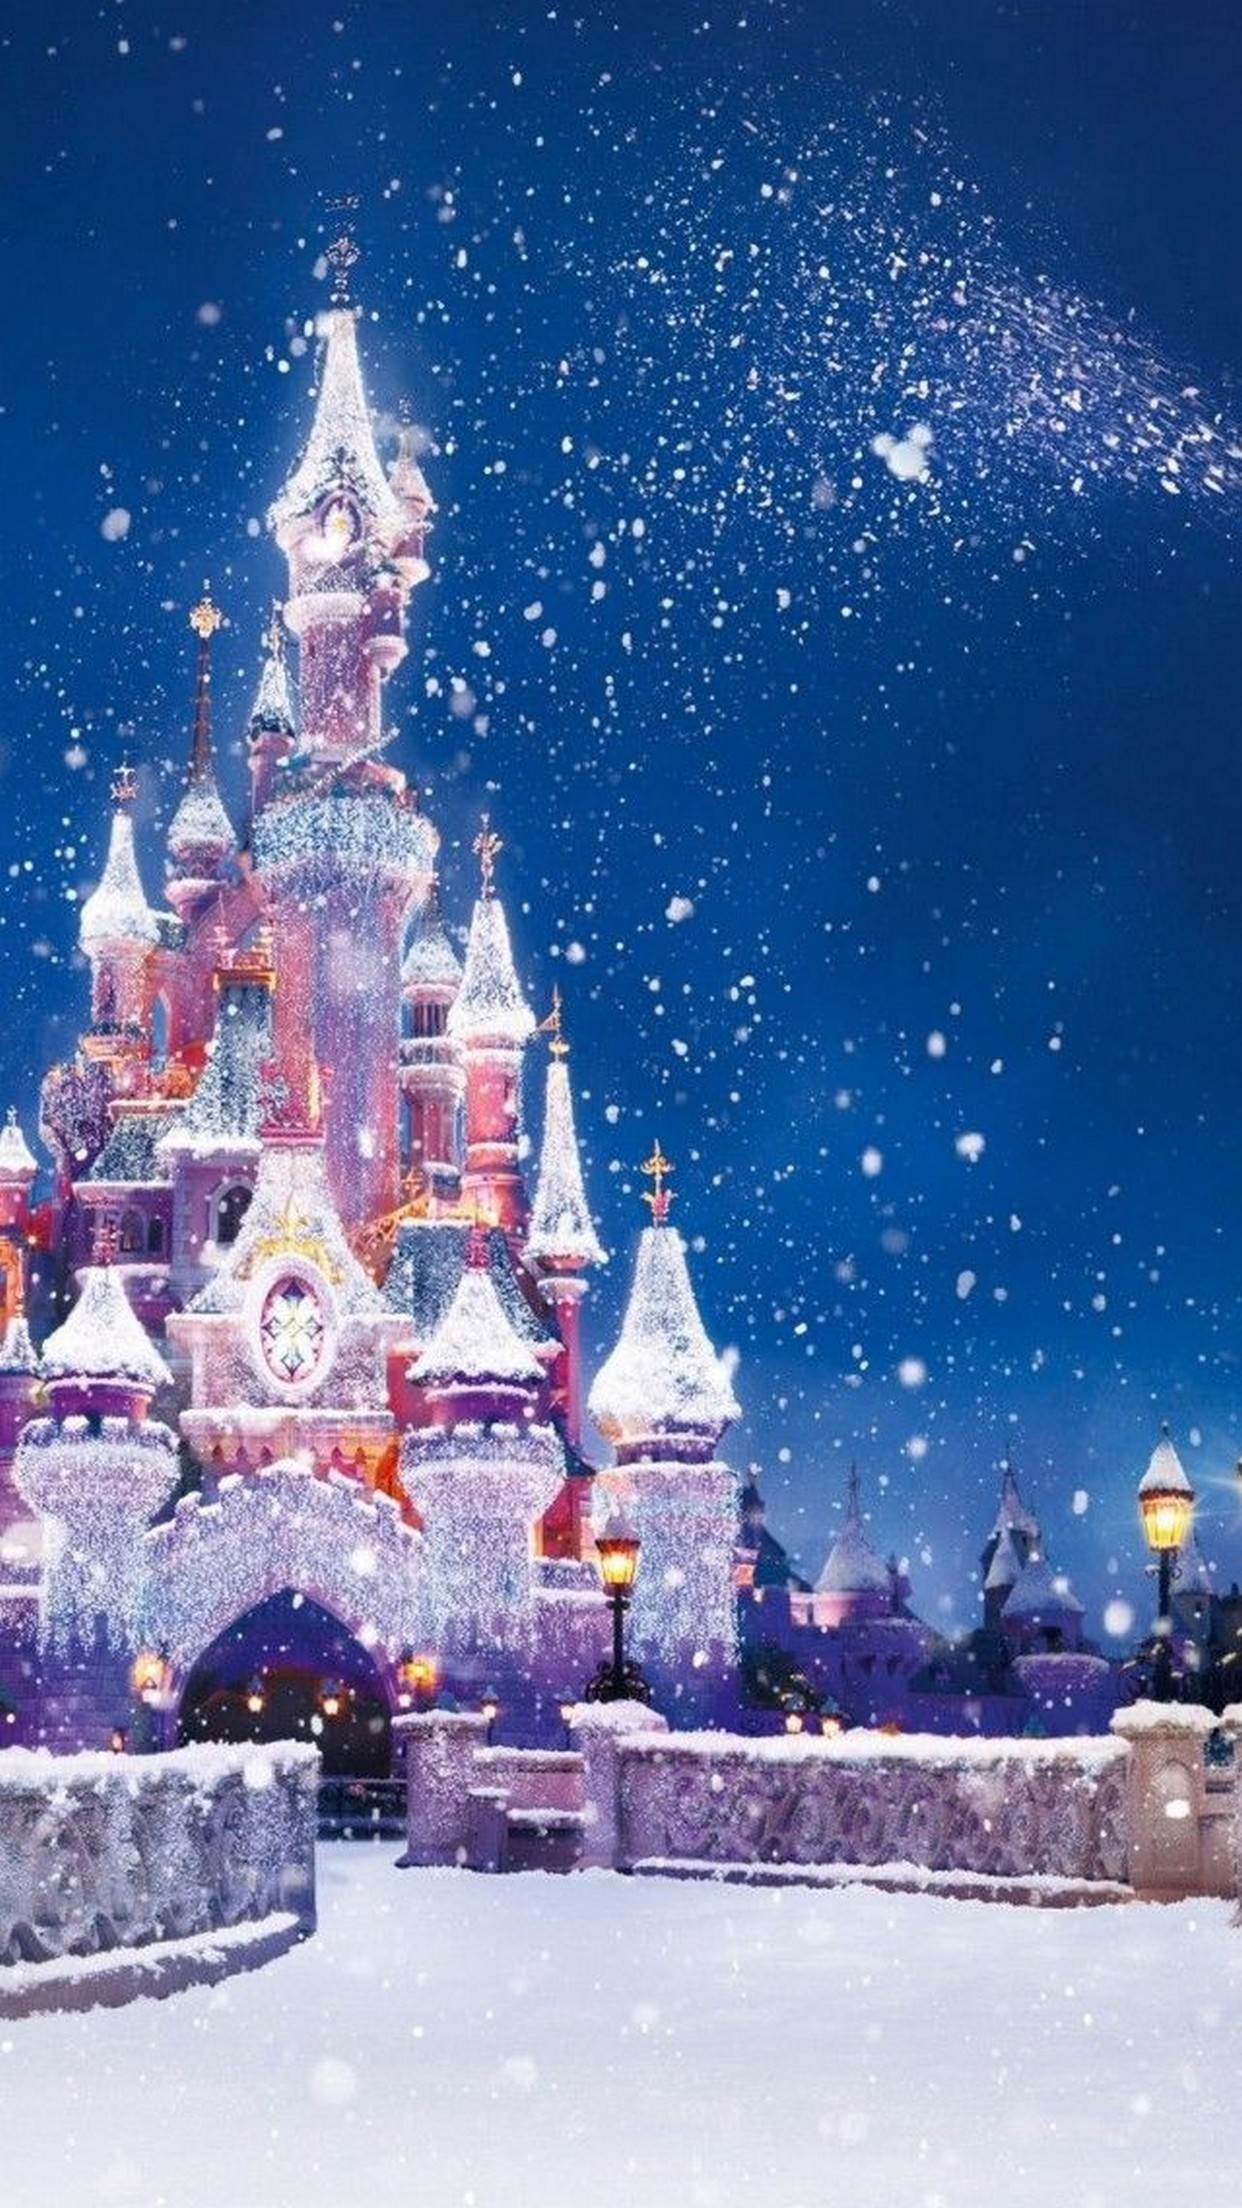 Explore Christmas Wallpaper For Iphone and more!